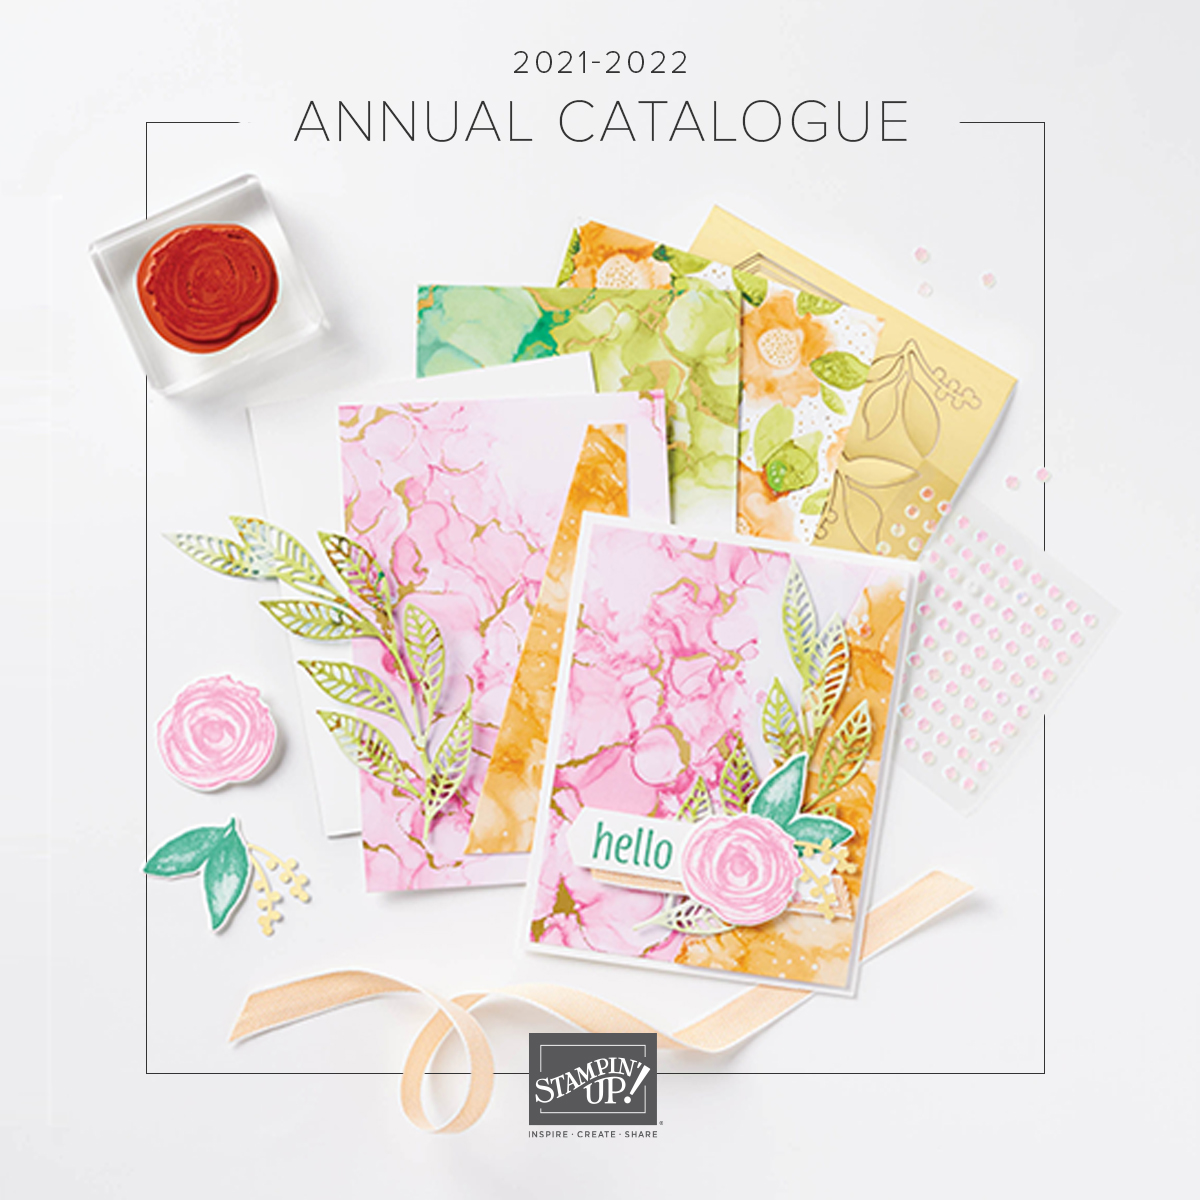 THE NEW ANNUAL CATALOGUE 2021-22 4 May to  2 May 2022